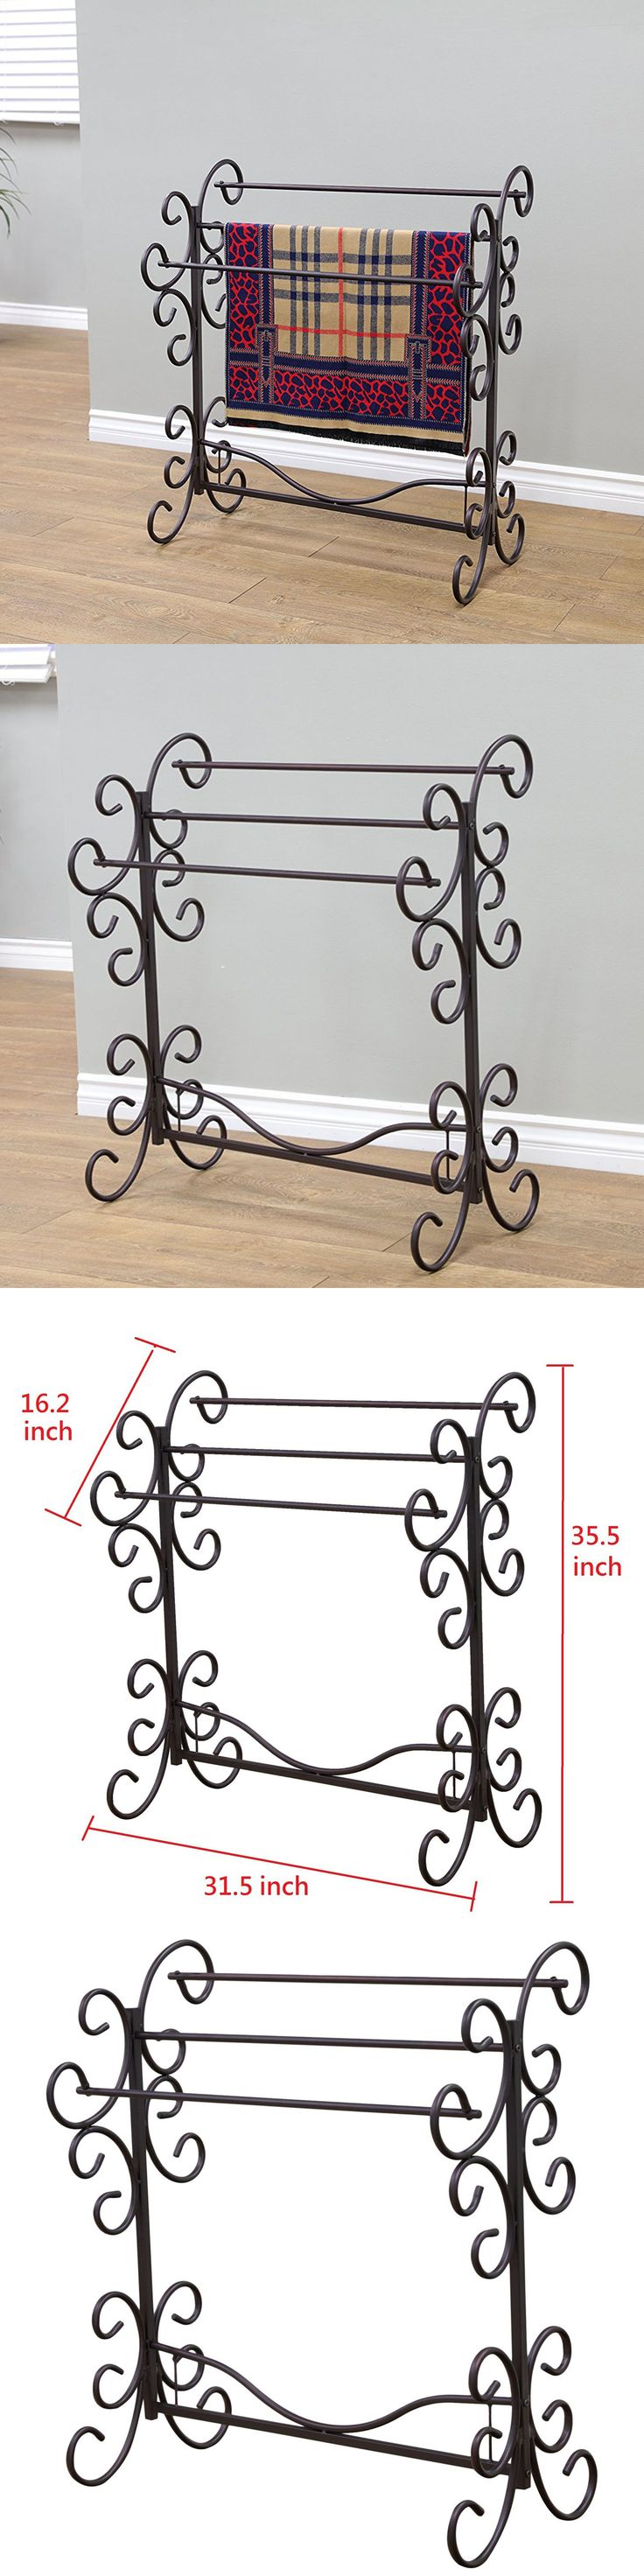 best  towel racks and stands ideas on pinterest  pvc pipe rack  - quilt hangers and stands  iron scroll blanket quilt towel rack metalhanger storage stand